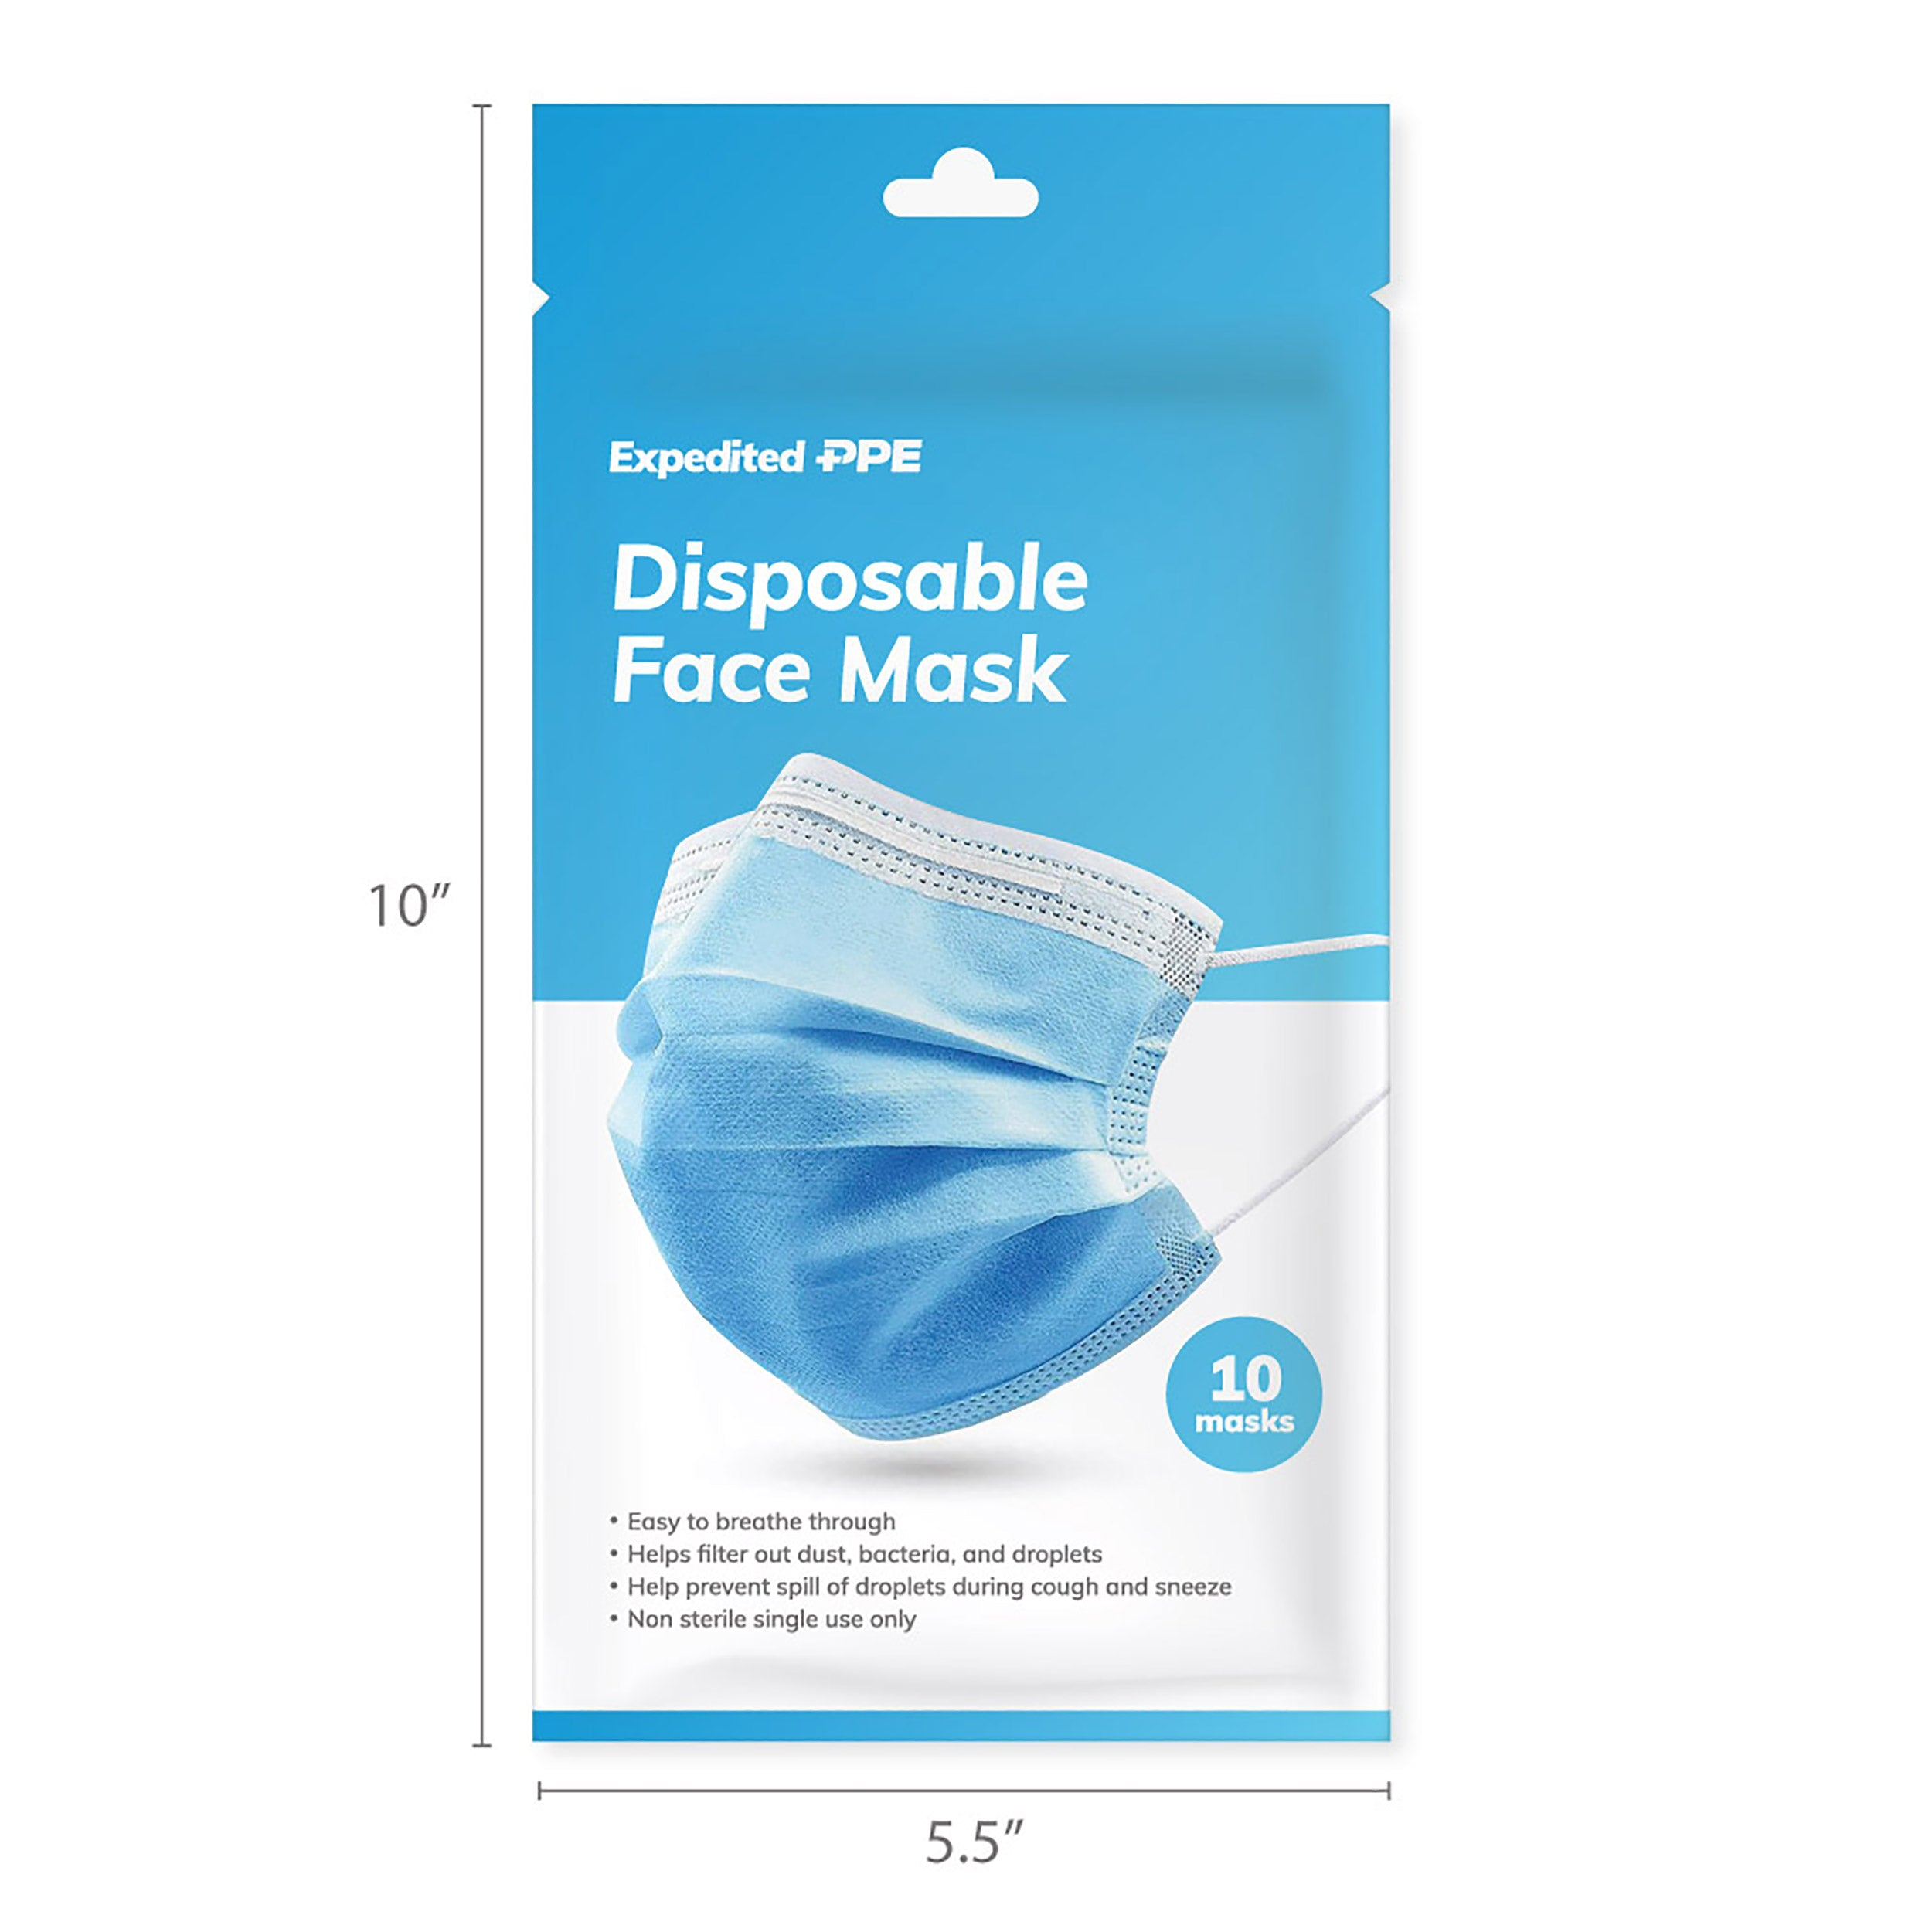 50-Pack Disposable Face Mask with Ear Loop (5 cases of 10-Pack)